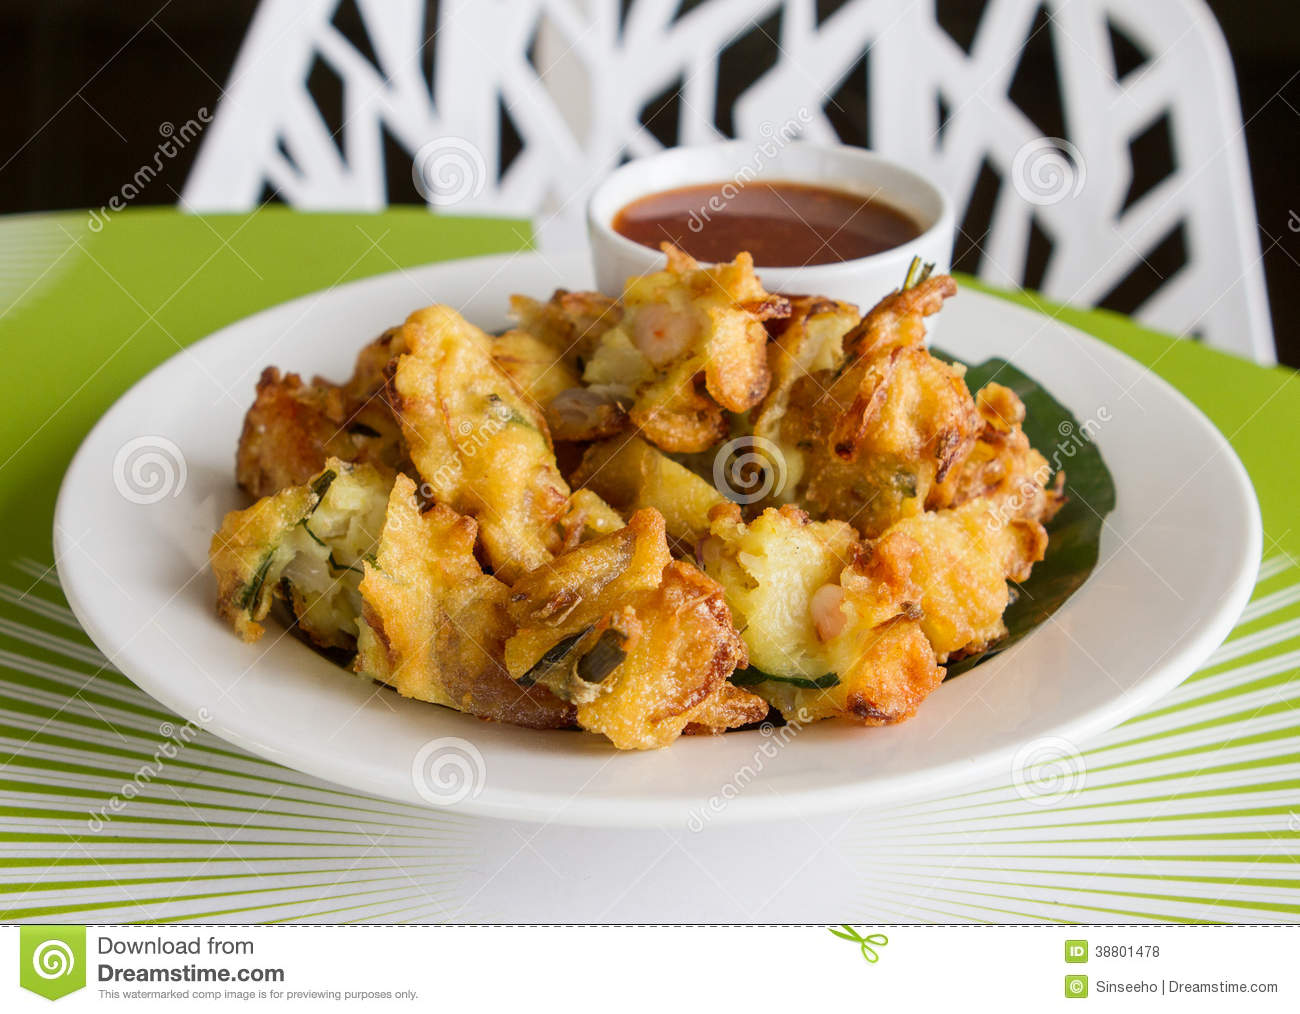 shrimp kung pao prawn zucchini fritters cucur udang cucur udang prawn ...